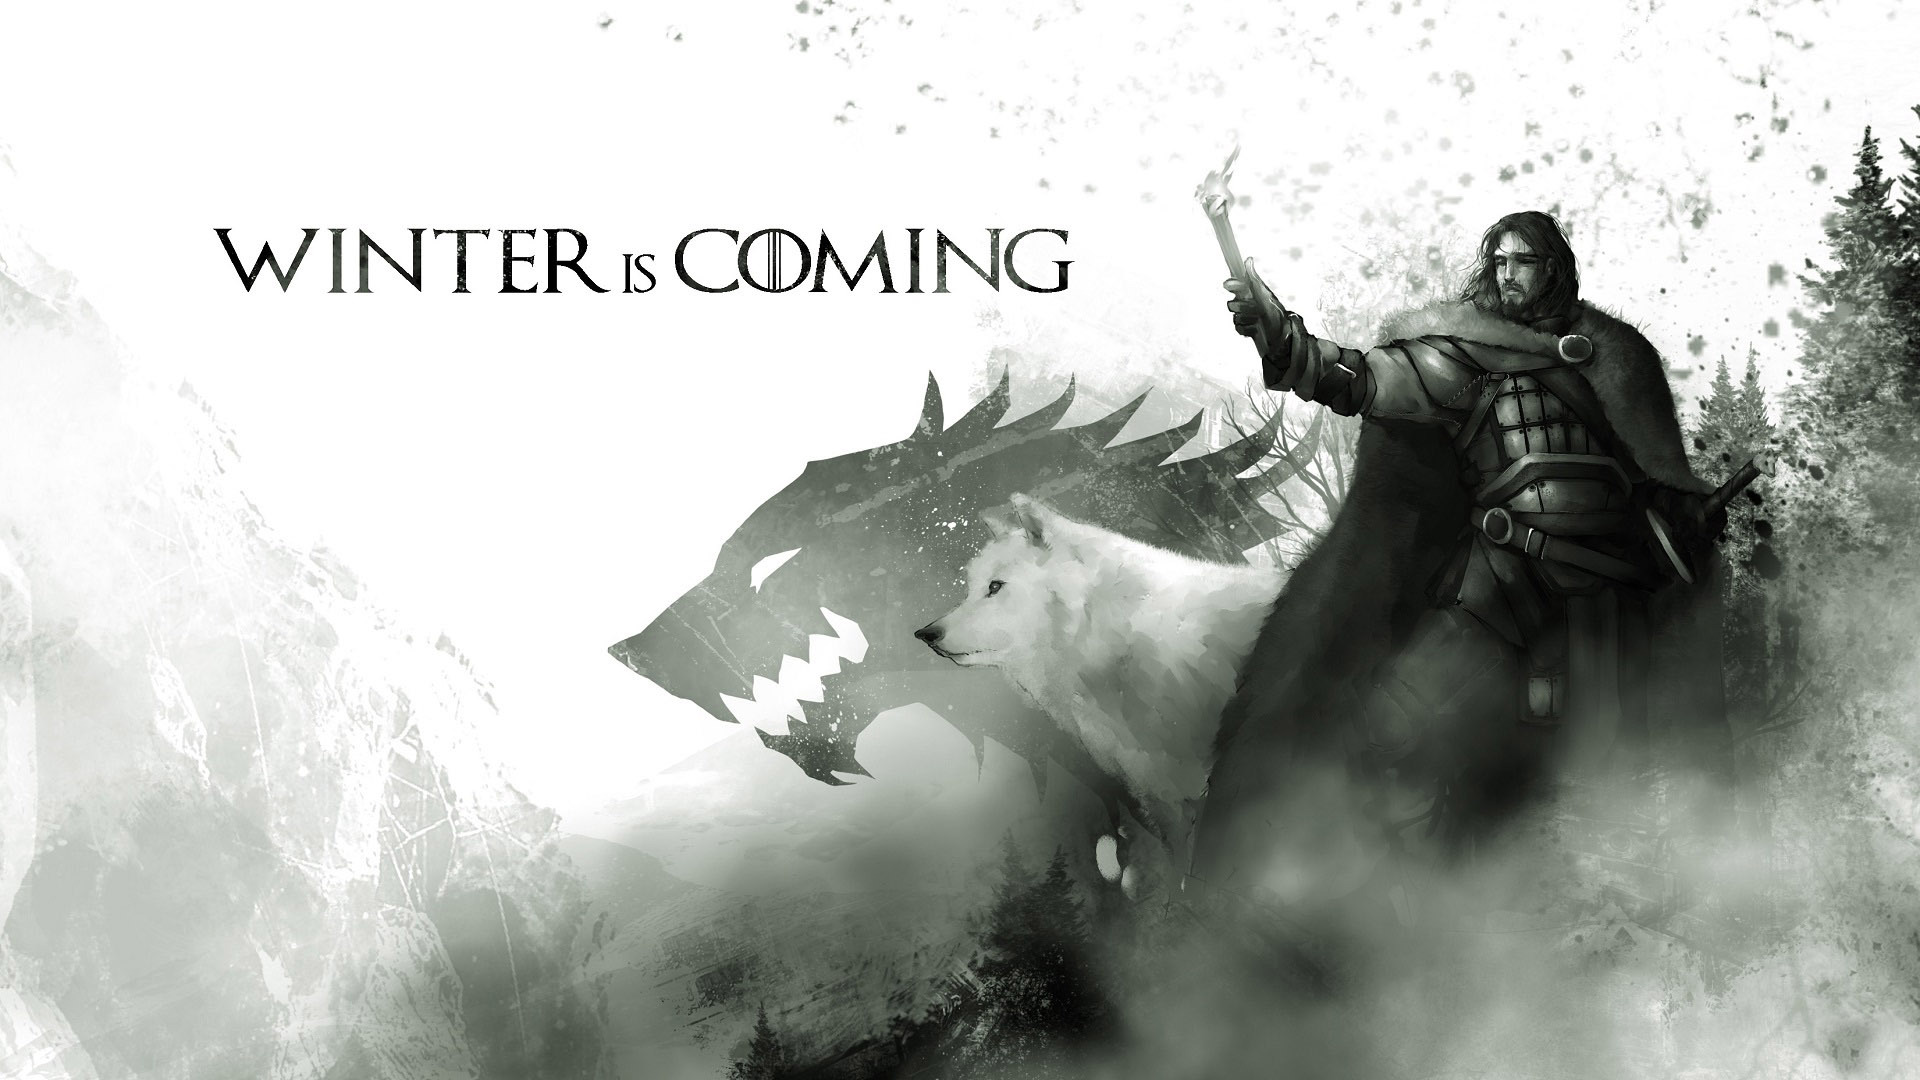 game of thrones season 4 wallpapers hd 1920x1080